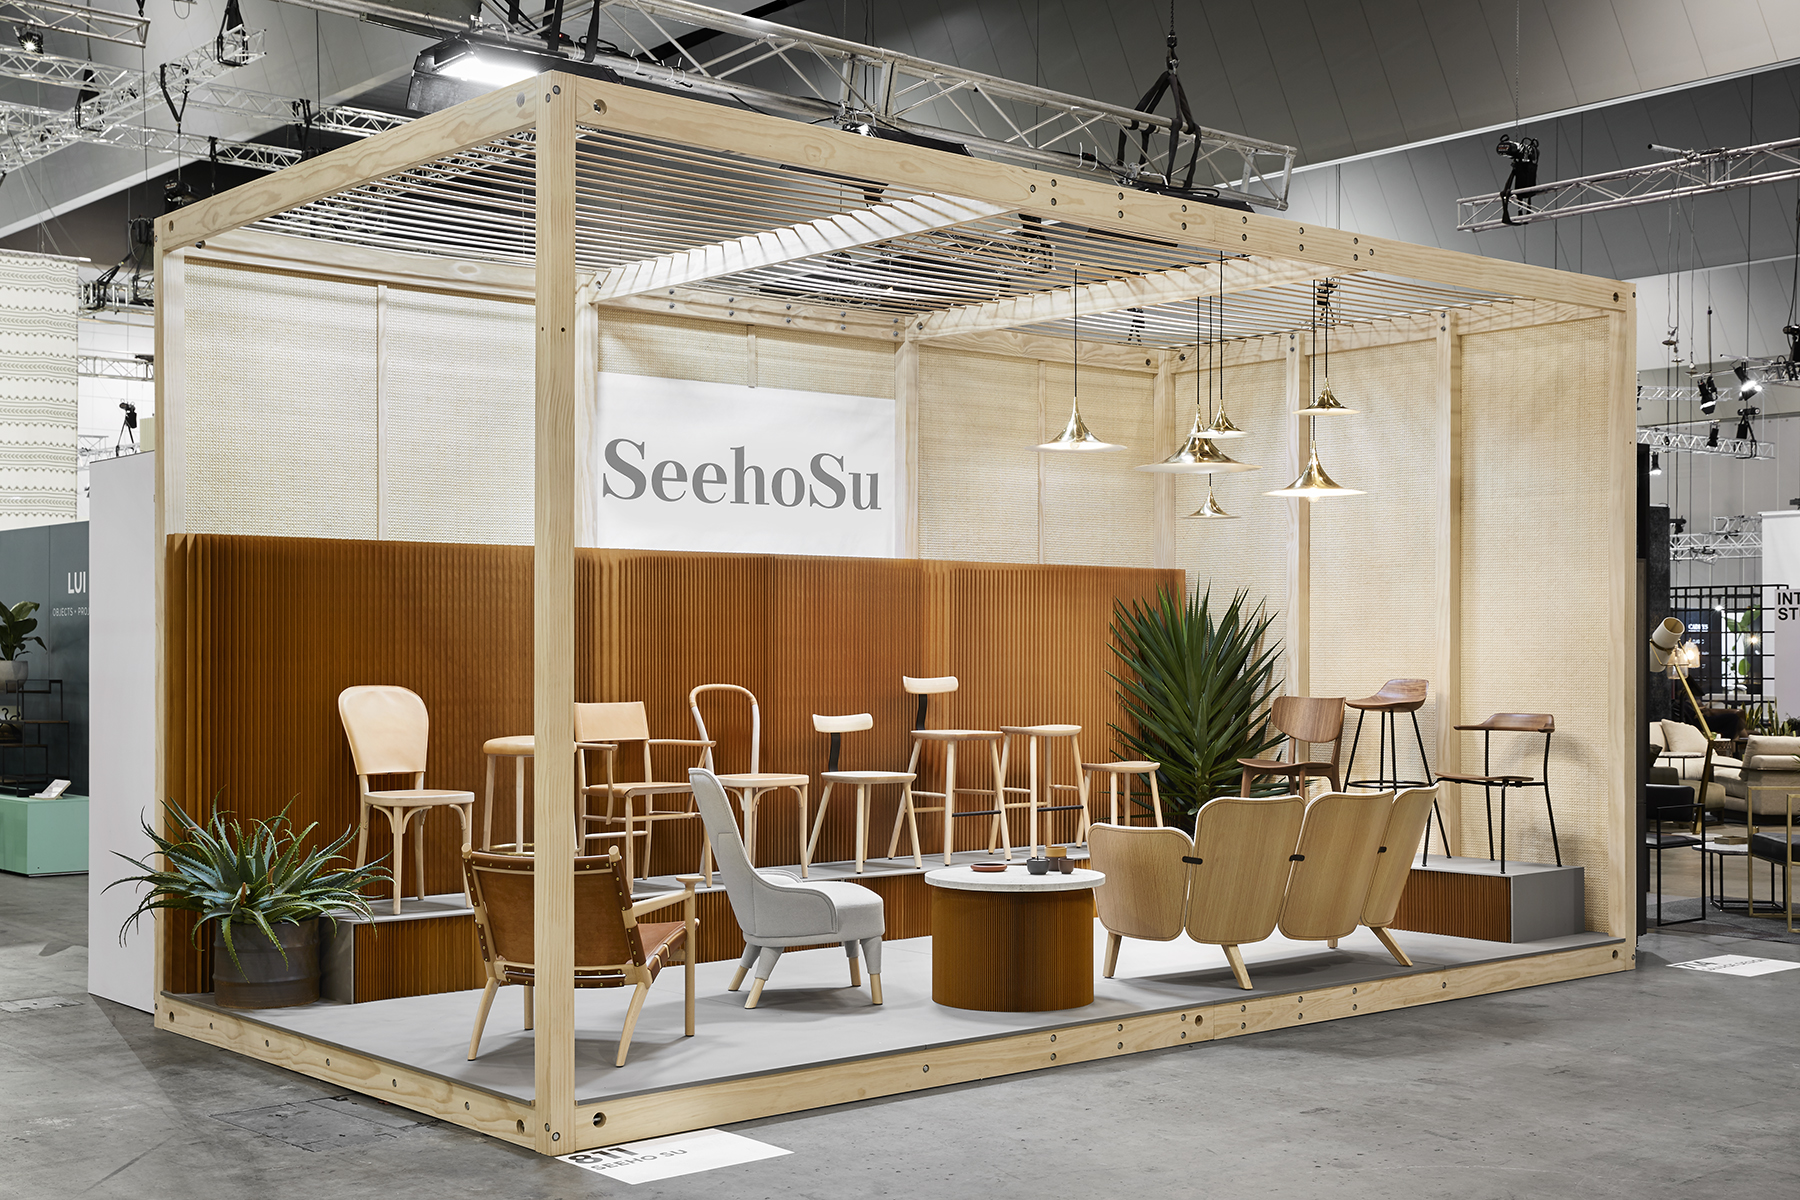 The SeehoSu stand featuring chairs from Maruni, Gemla, Gärsnäs plus Molo's 'Softwall' and a cluster of 'Semi' pendant lights from Gubi. Photograph by Tess Kelly.